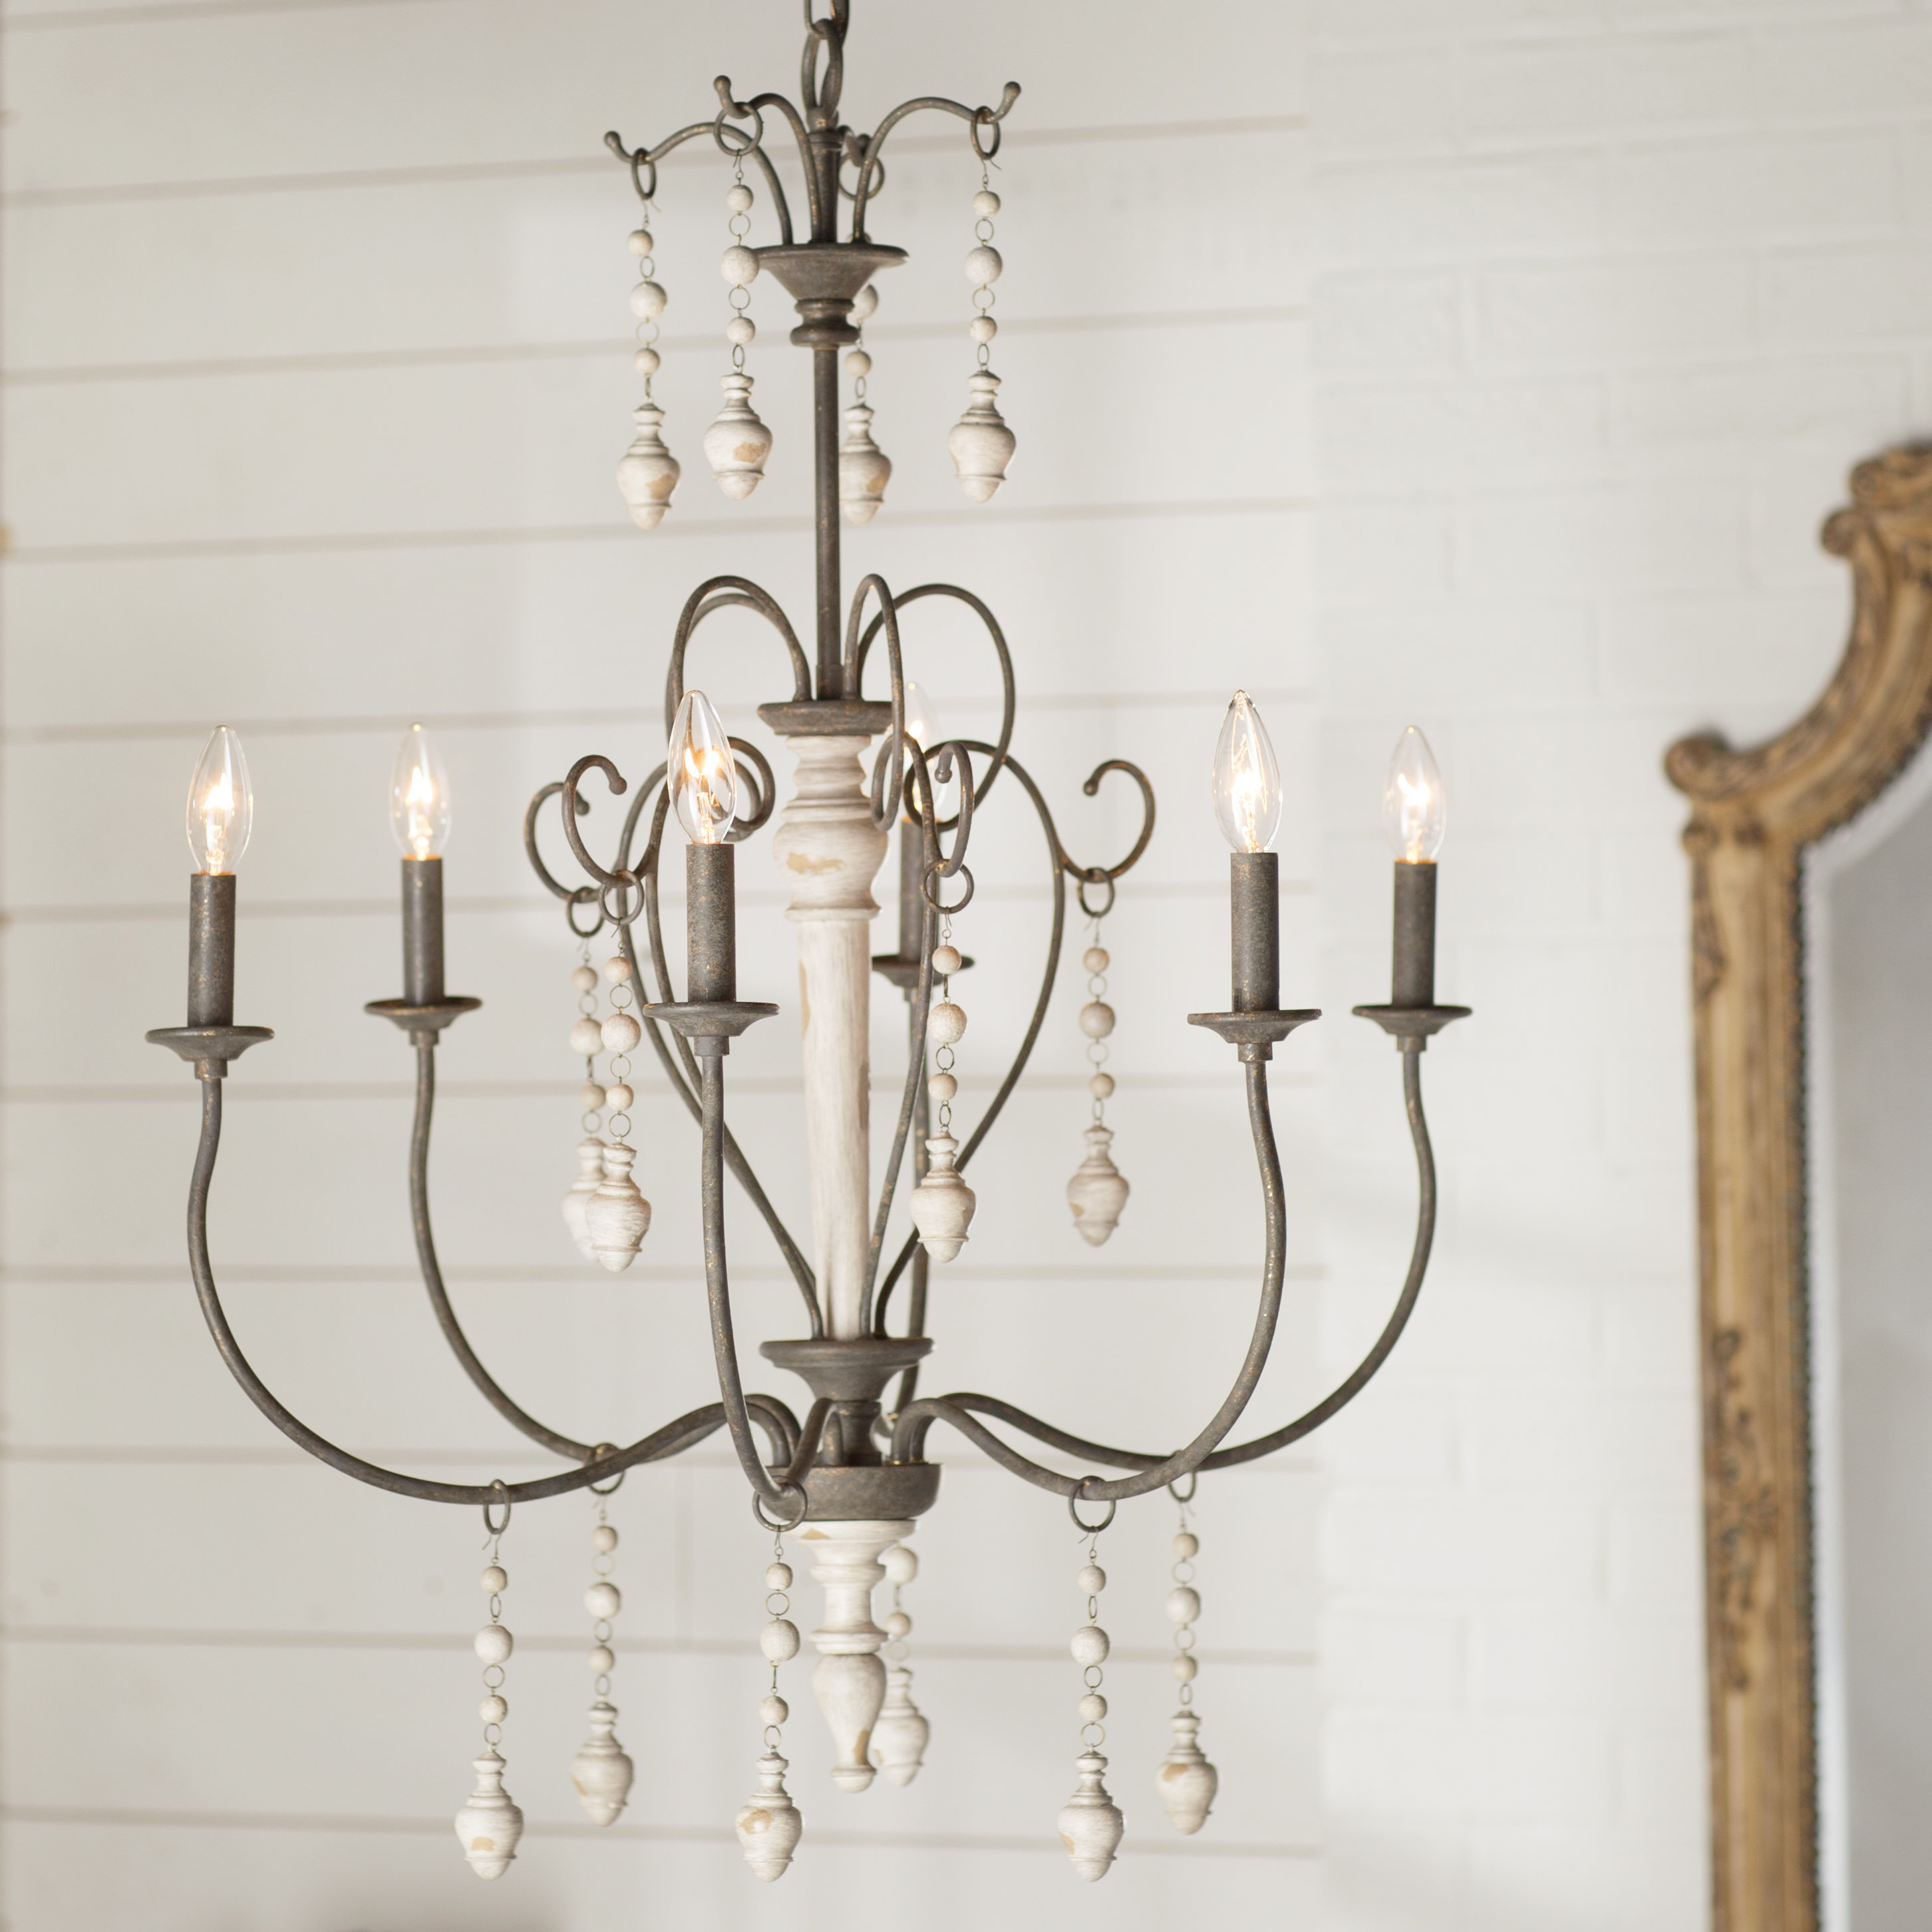 2020 Armande Candle Style Chandeliers Throughout Bouchette Traditional 6 Light Candle Style Chandelier (View 2 of 25)